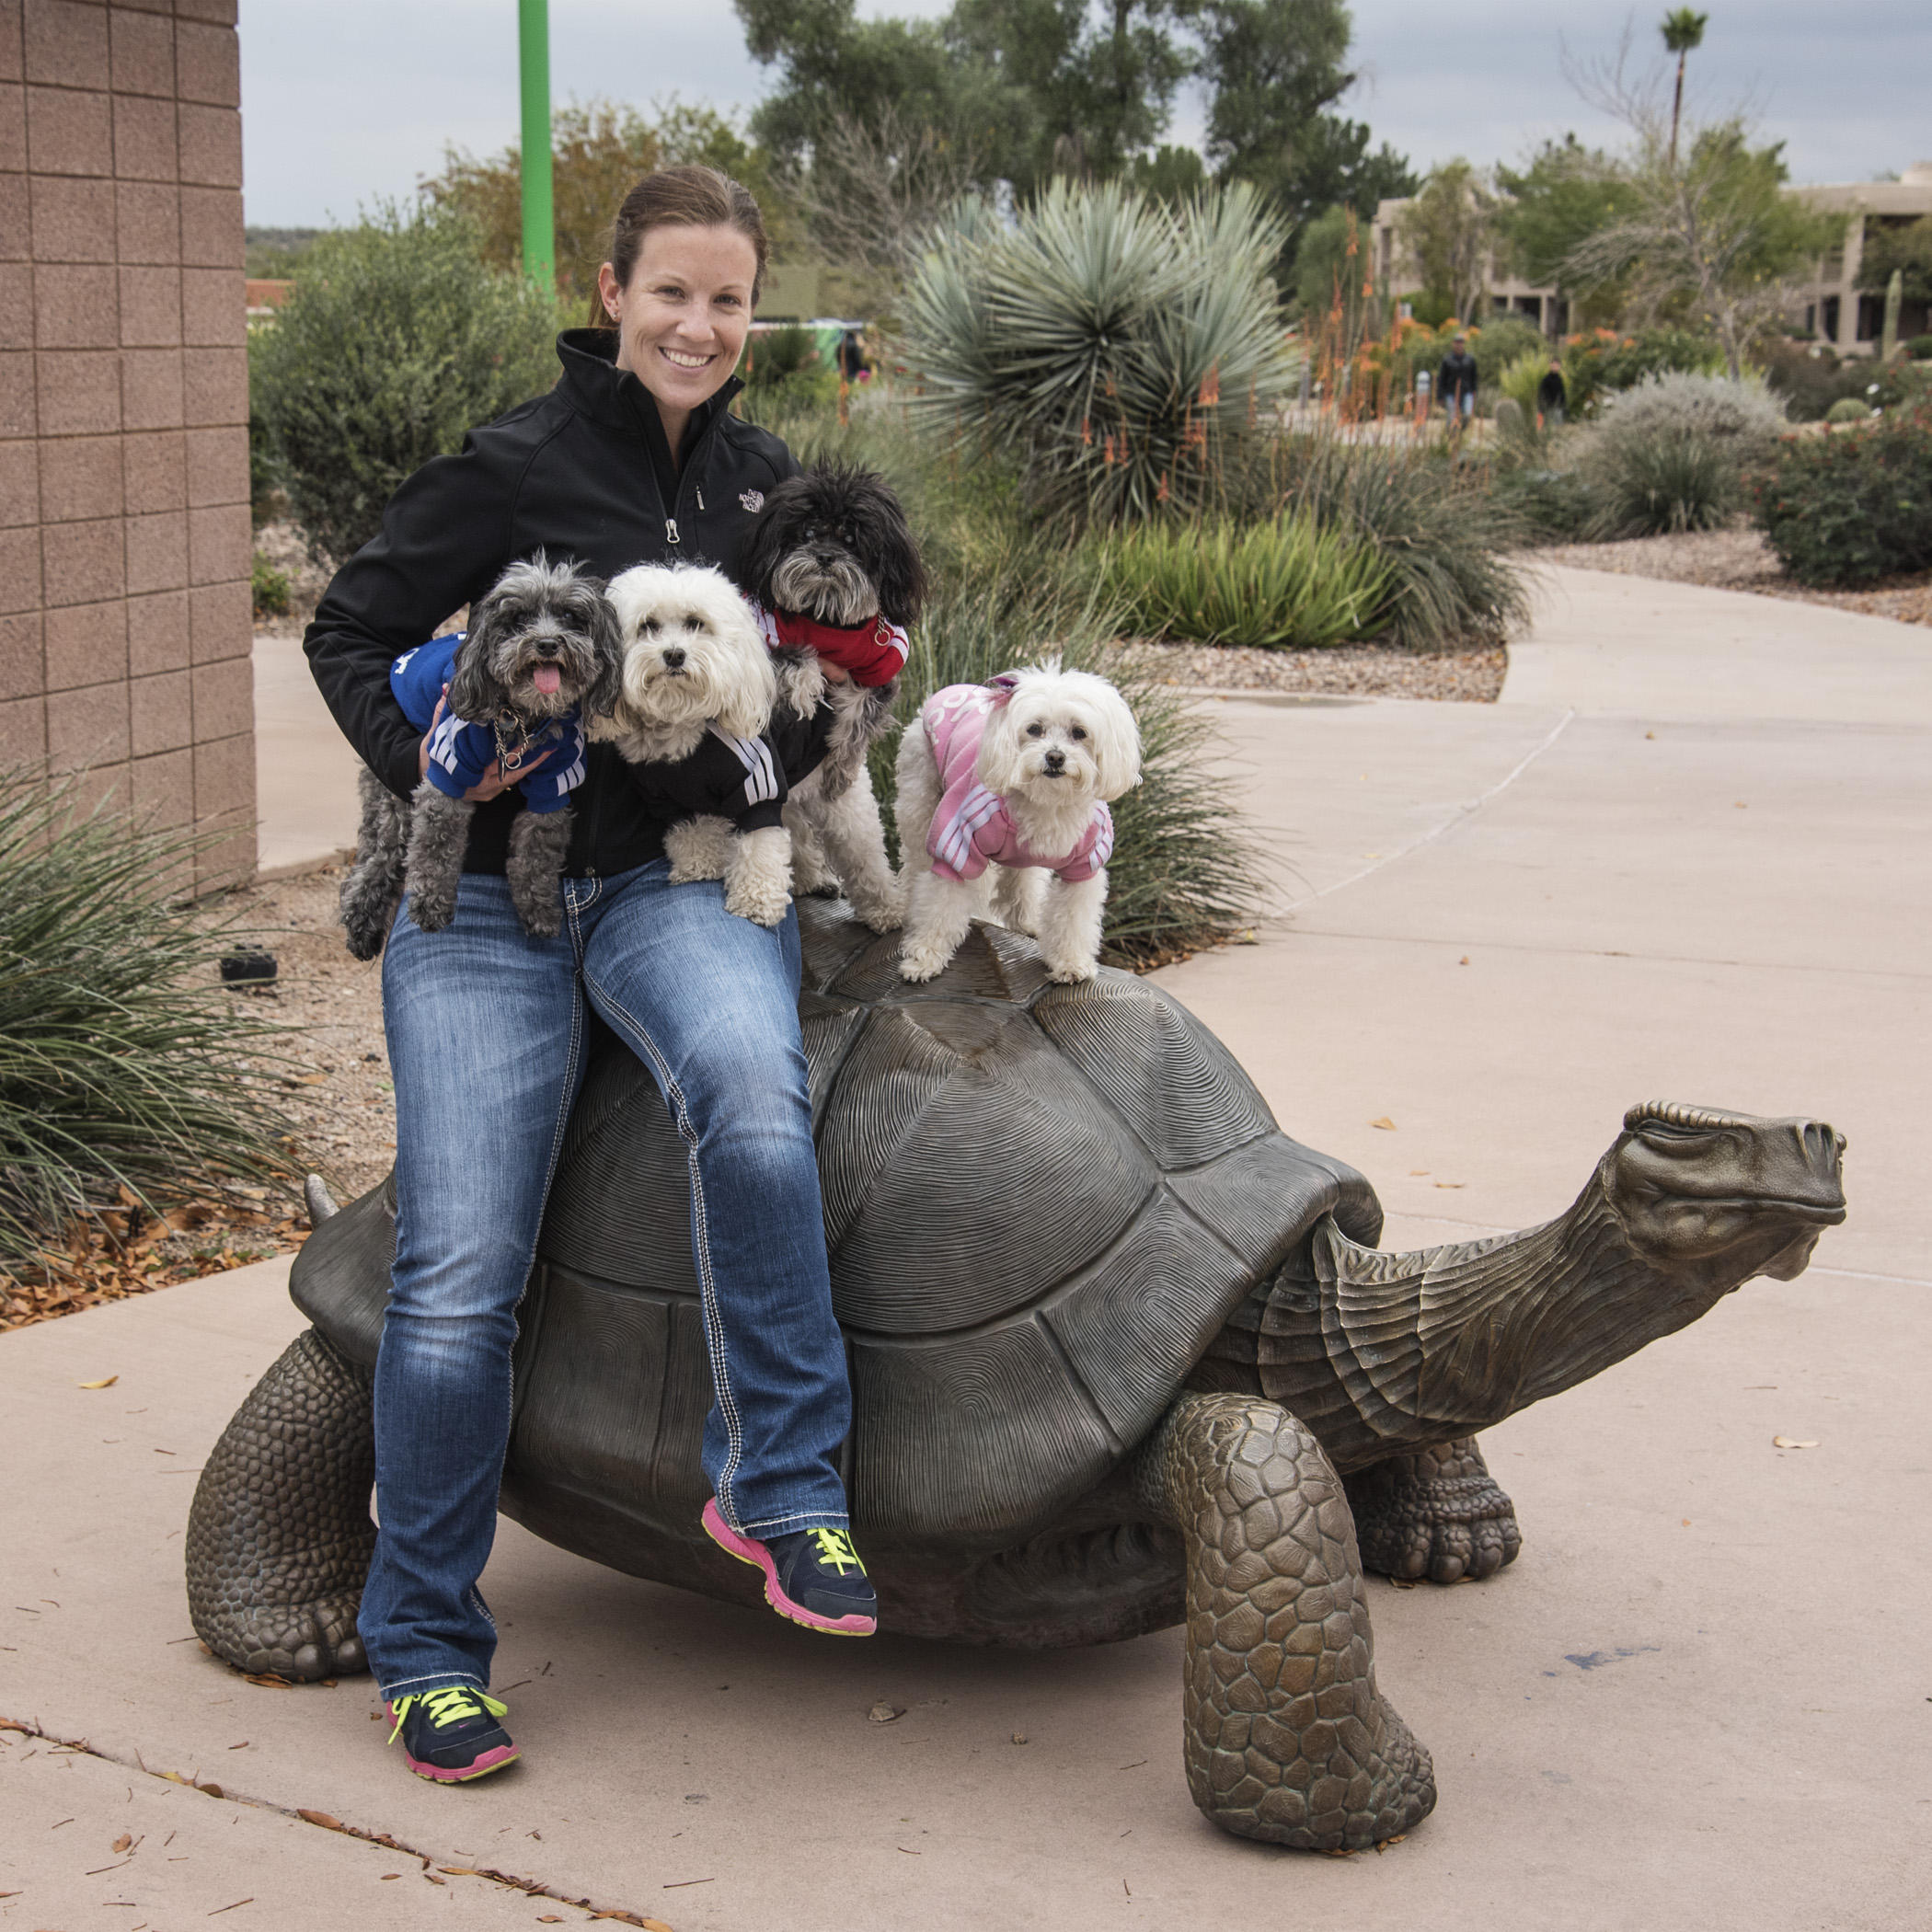 Have you ever rode on a turtle before? We can now say, we have. Thanks for the assist, Aunt Lori!